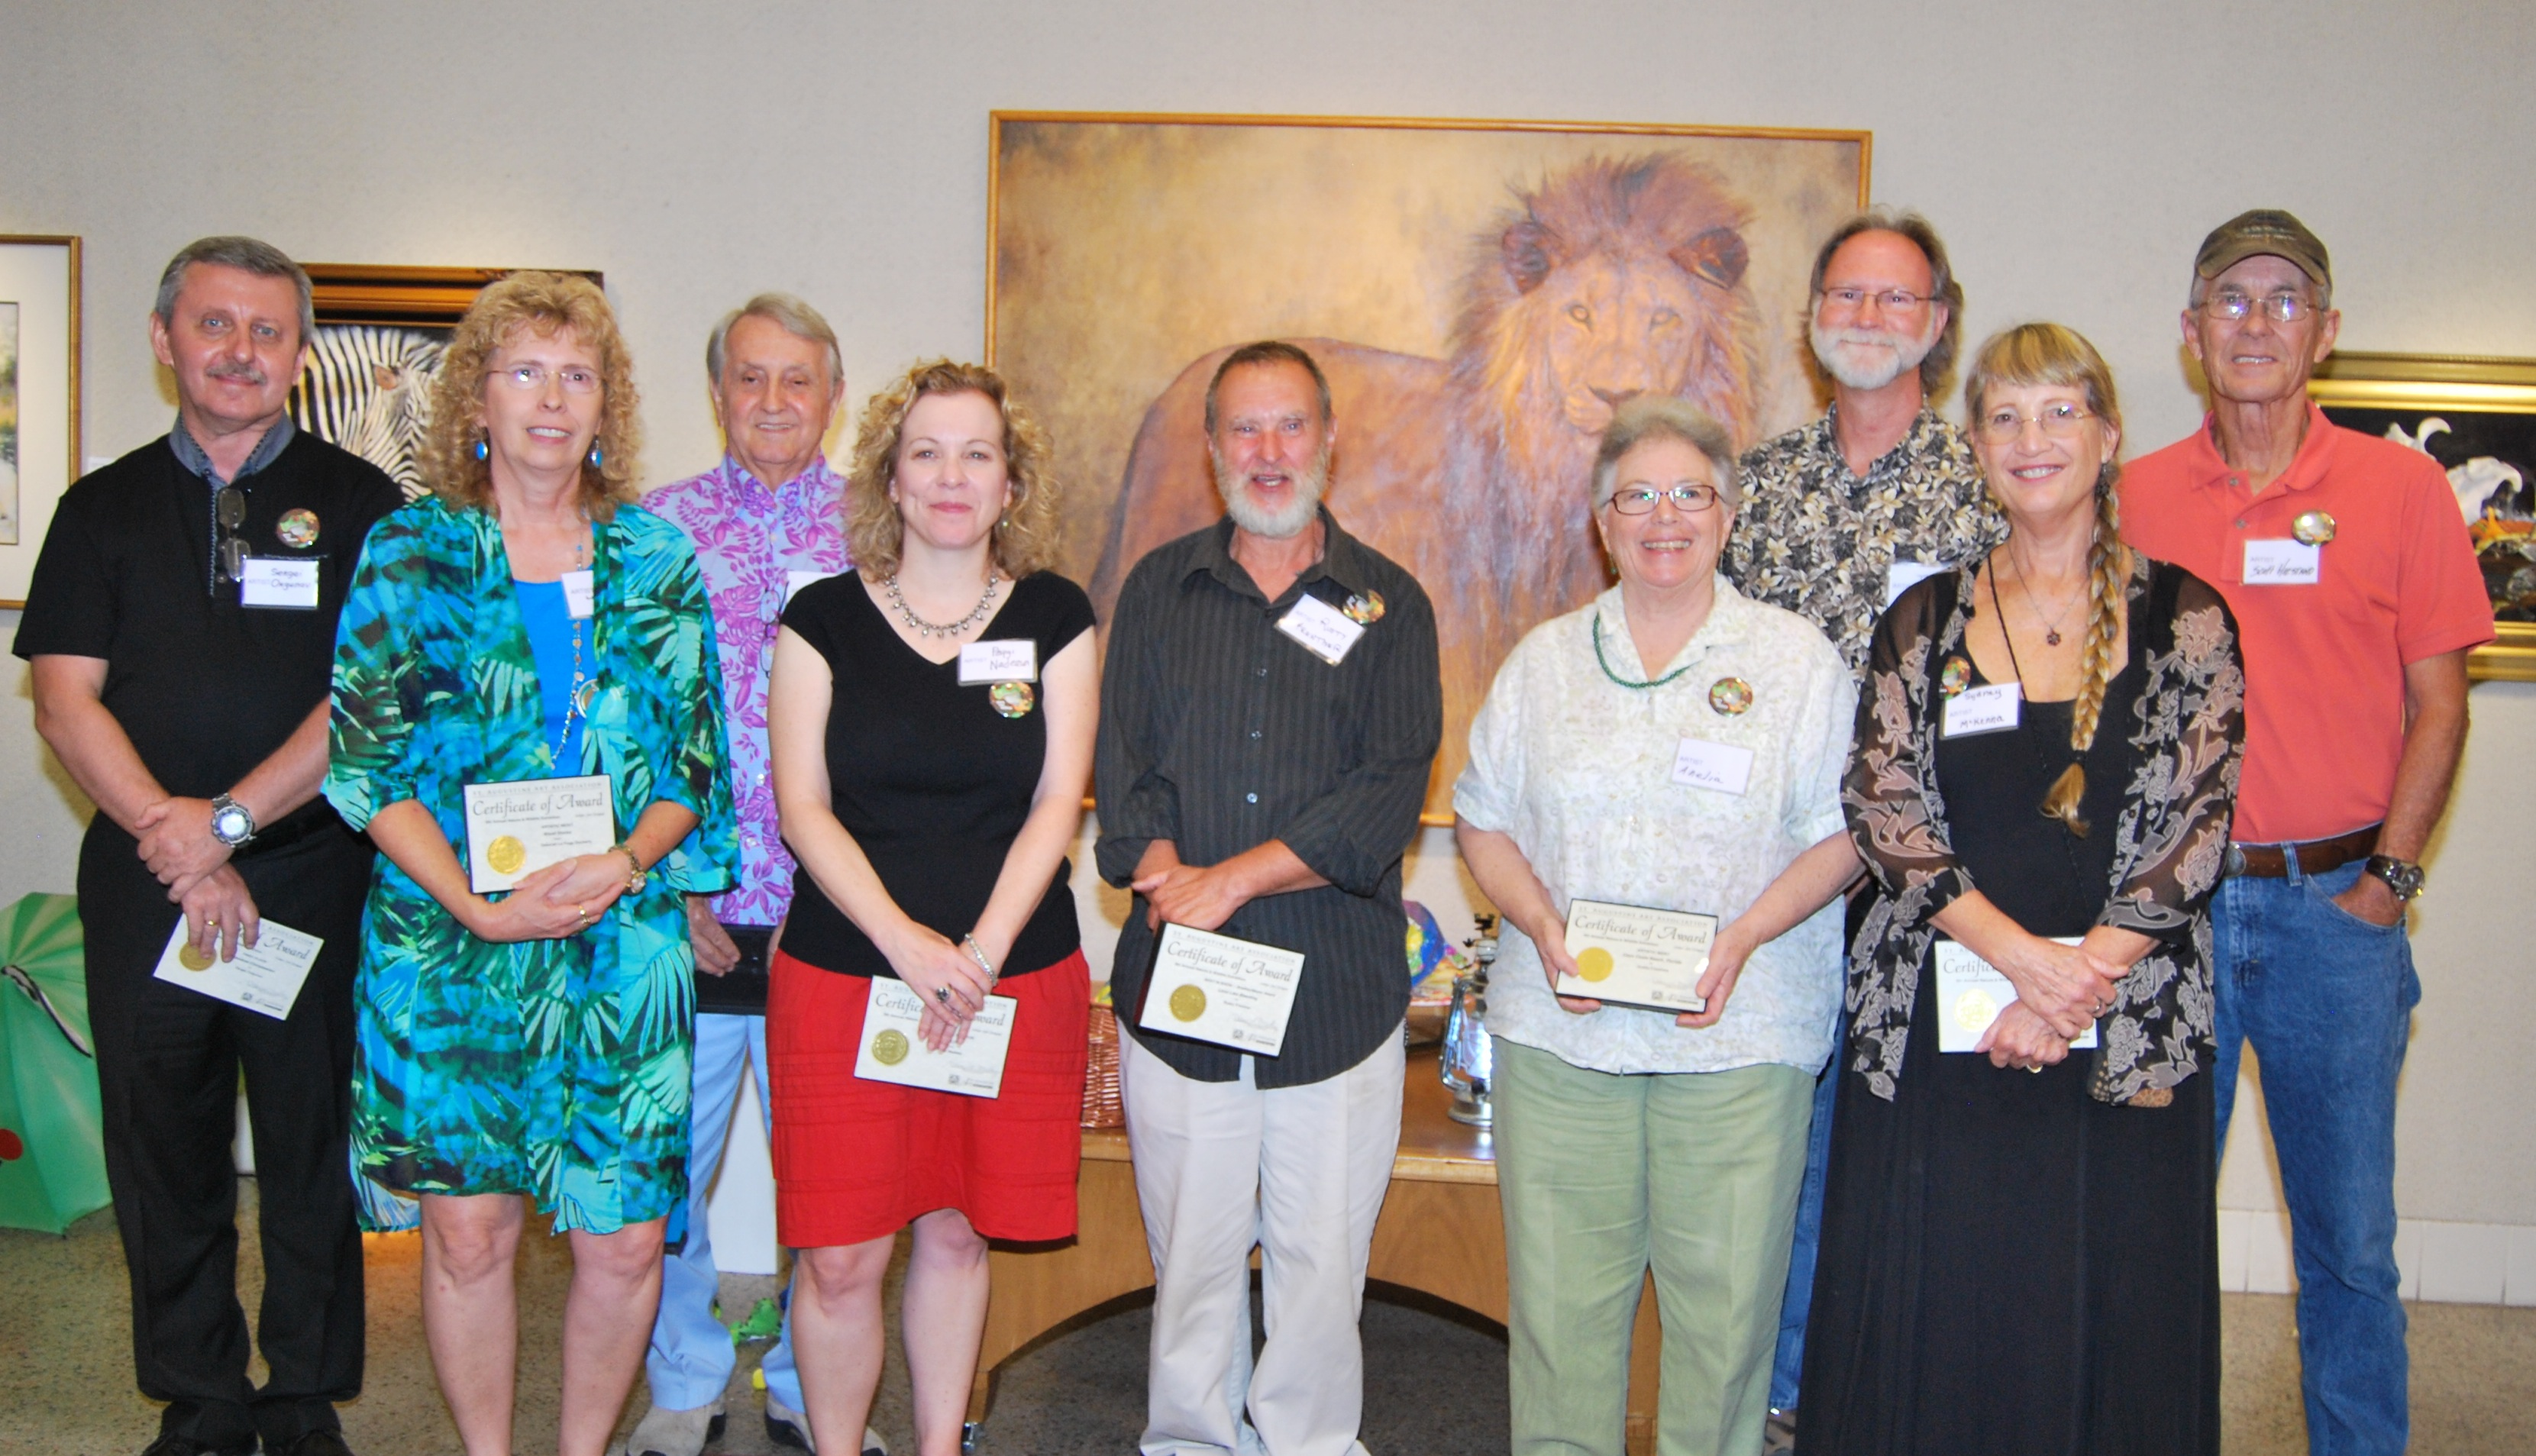 Award winning artists from the 6th Annual Nature & Wildlife Exhibit (l to r) Sergei Orgunov, Deborah LaFogg Docherty, Bill Morris, Peggi Nadeau, Rusty Frentner, Anelia Crawford, Ted Head, Sydney McKenna, Scott Hiestand (not shown: Brandon Lutterman, John Doddato, Monique Lazard) (Photo by Laine Quinn)